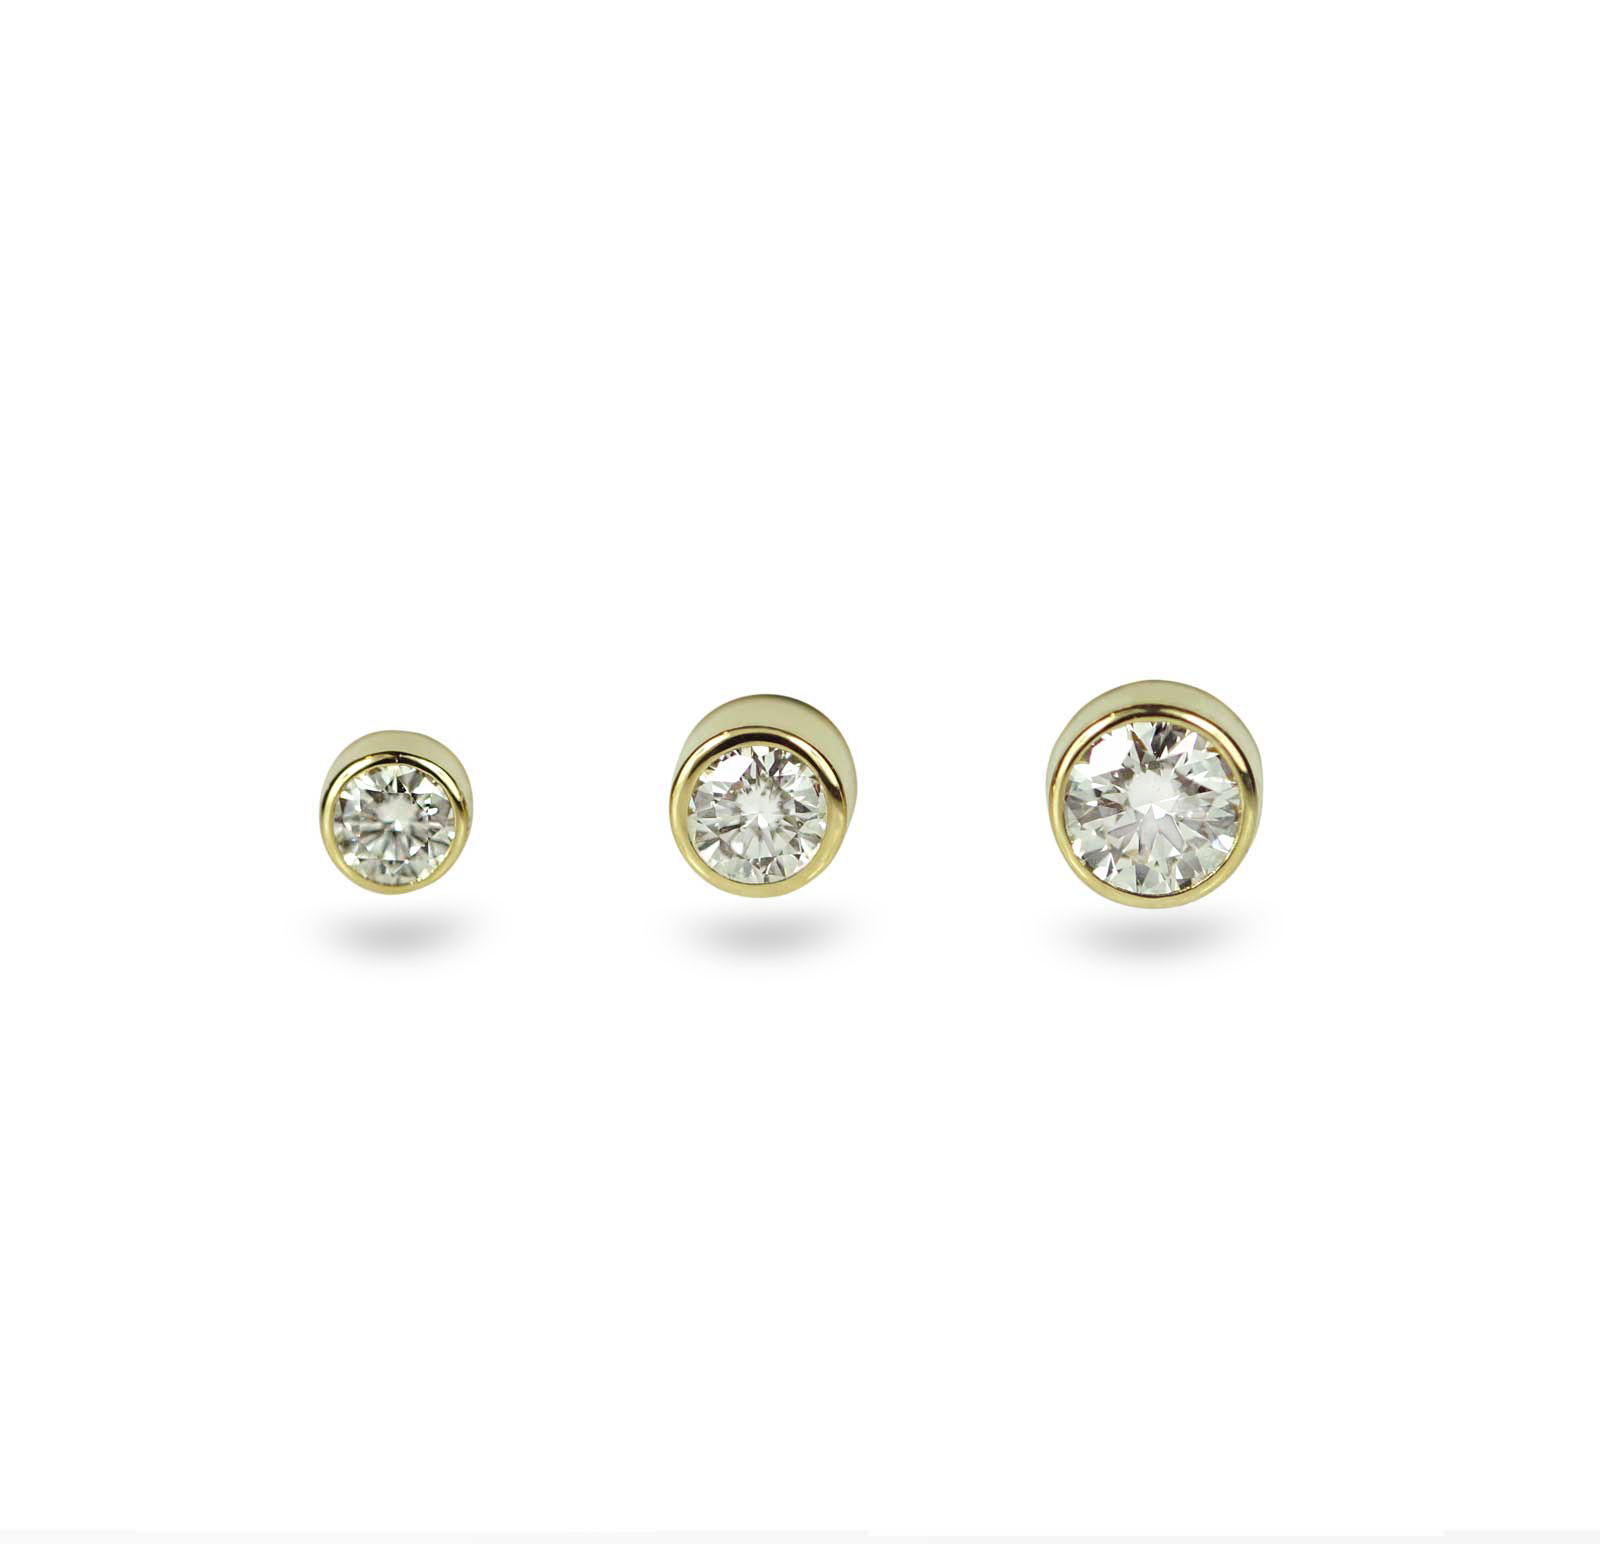 diamond-piercing-studs-screw-backs-gold-buy-online-d